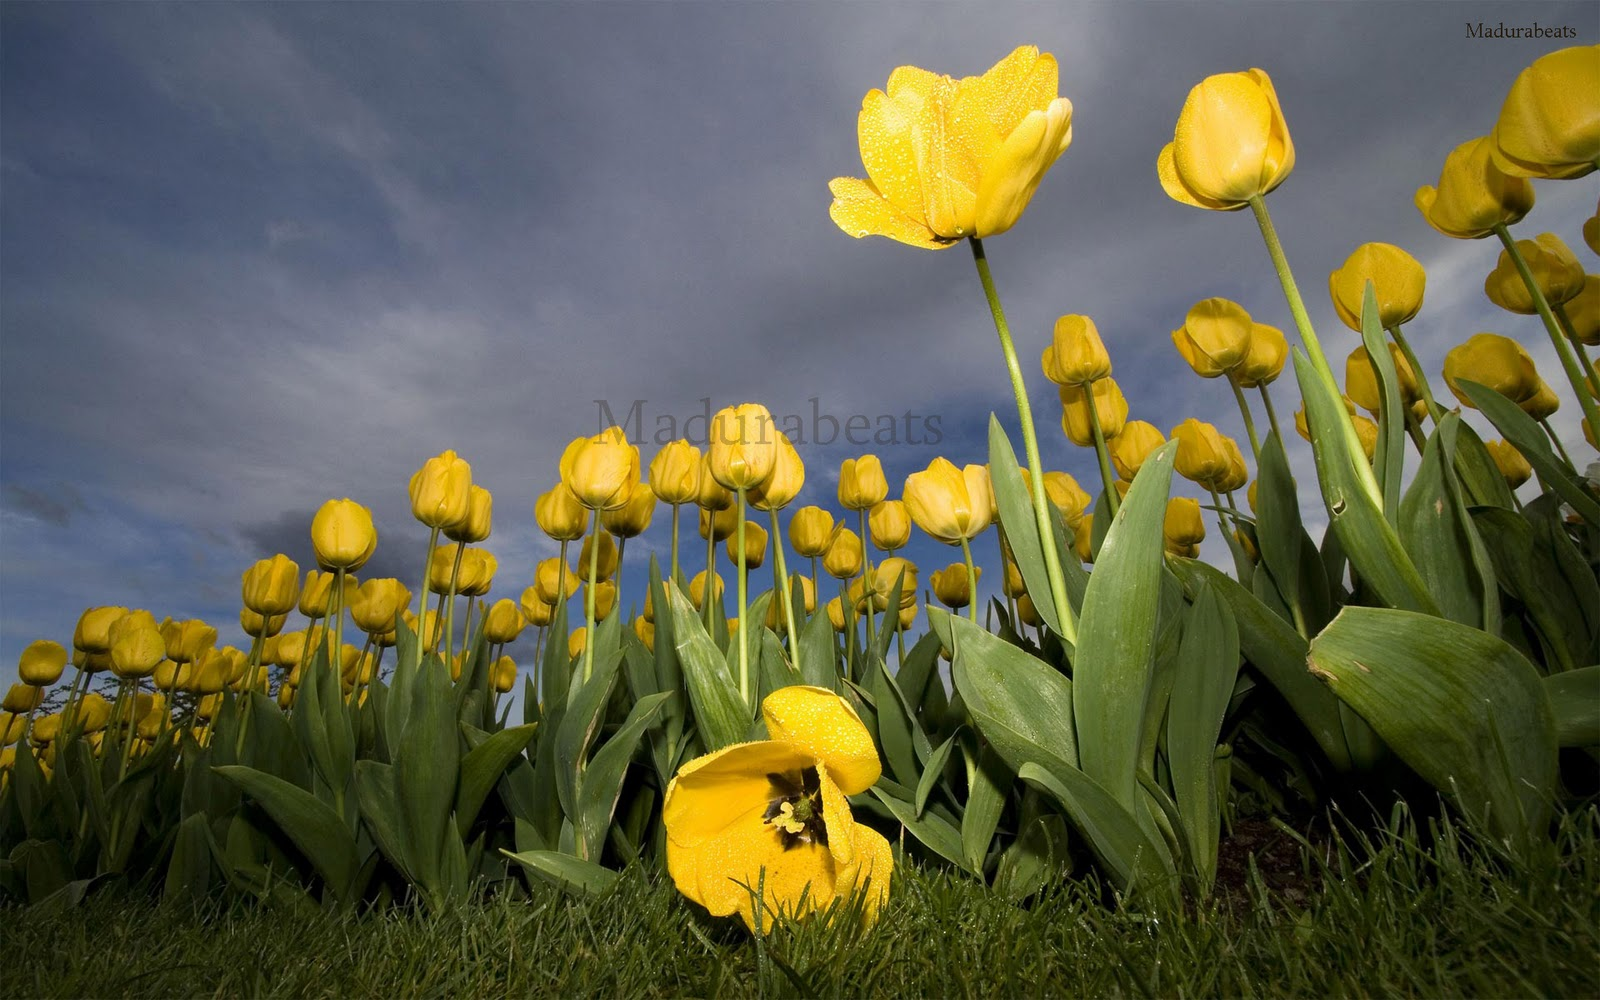 Yellow_tulips_with_Cloudy+Sky_wide screen_wallpaper,Flower images, Wide screen wallpapers,fresh flowers,Beautiful flowers